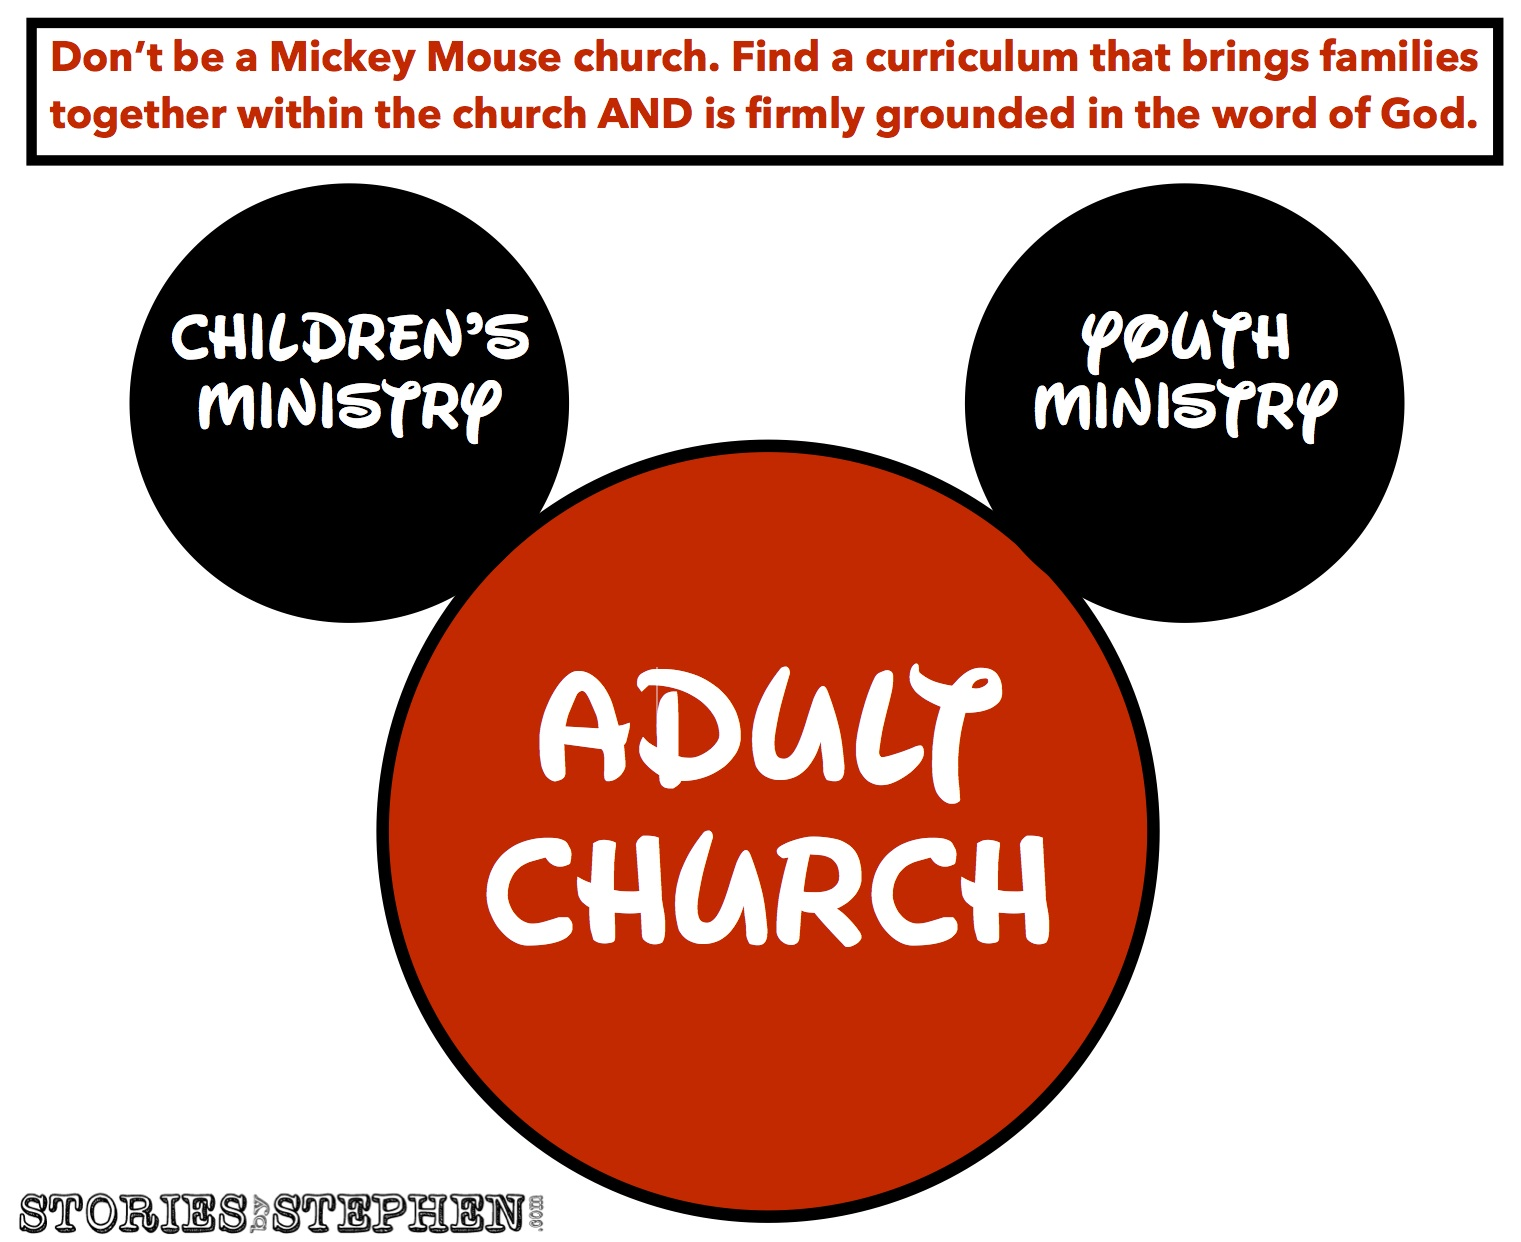 graphic regarding Free Printable Children's Church Curriculum named The Impossible Undertaking of Choosing Curriculum for Childrens